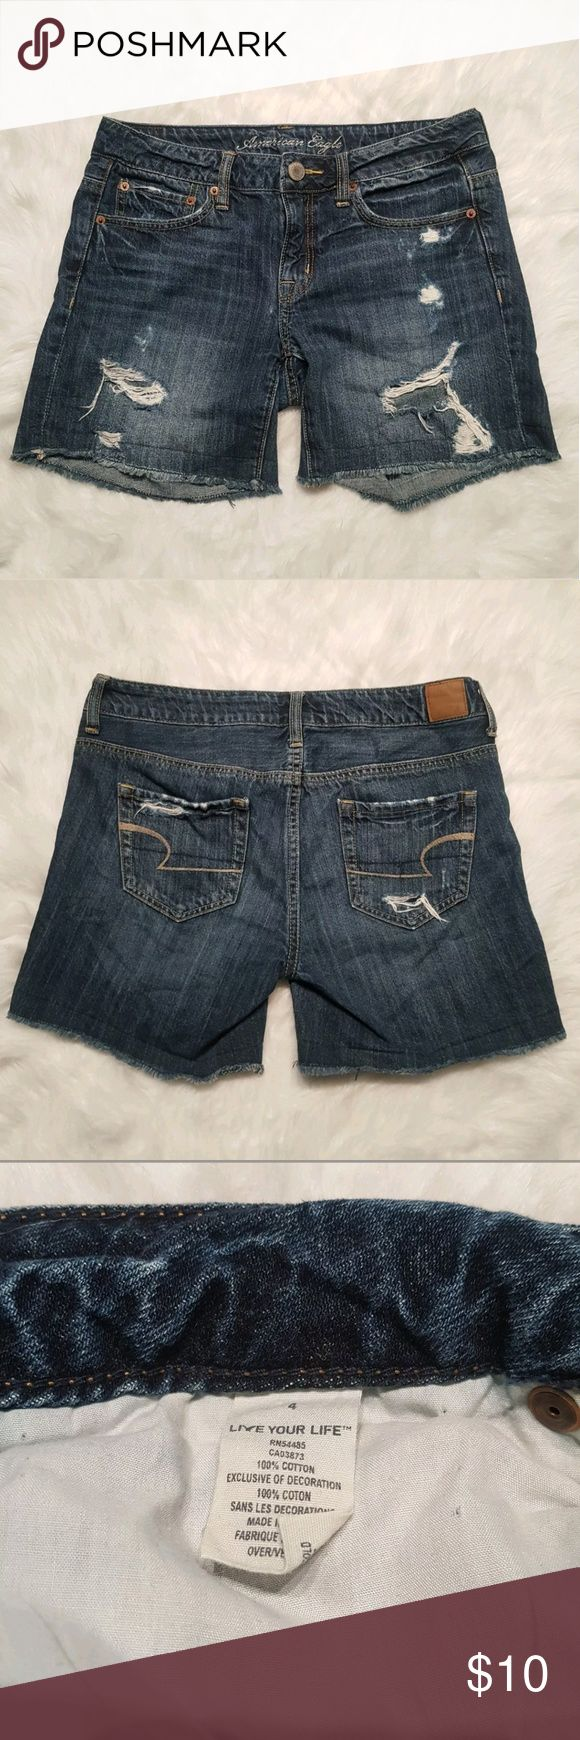 "American Eagle Women's Size 4 Factory Distressed American Eagle Womens Size 4 Bermuda Shorts  Inseam 5"" Rise 8"" Waist 32""  ****Measurements may vary 1/2"" plus or minus ****  Please see pictures for more details!  Thanks for looking! Happy shopping! Shorts Bermudas"